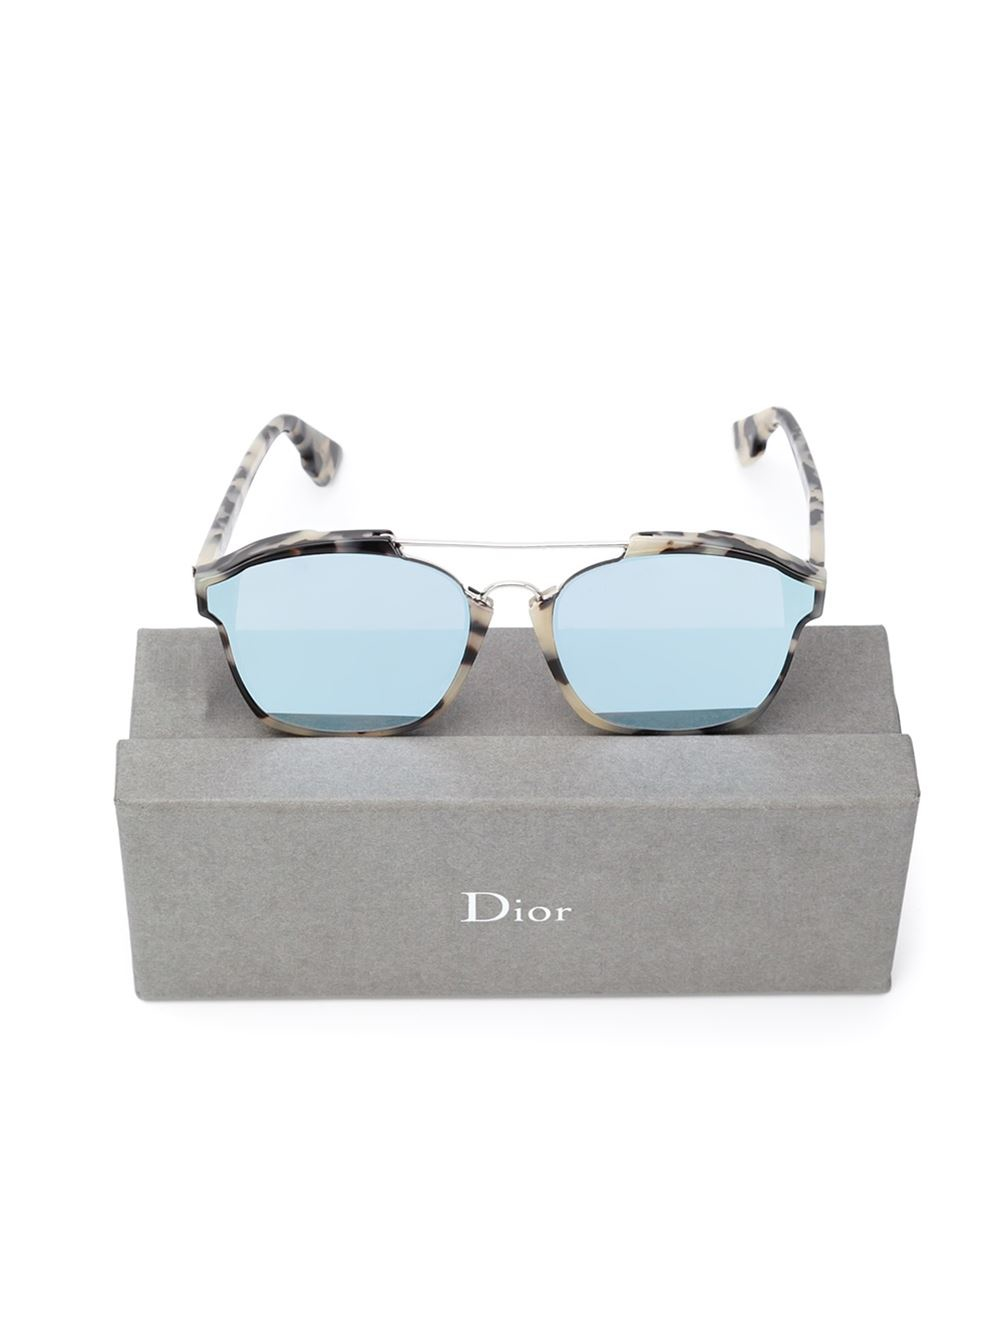 37301a7813 Dior  abstract  Sunglasses in Blue - Lyst